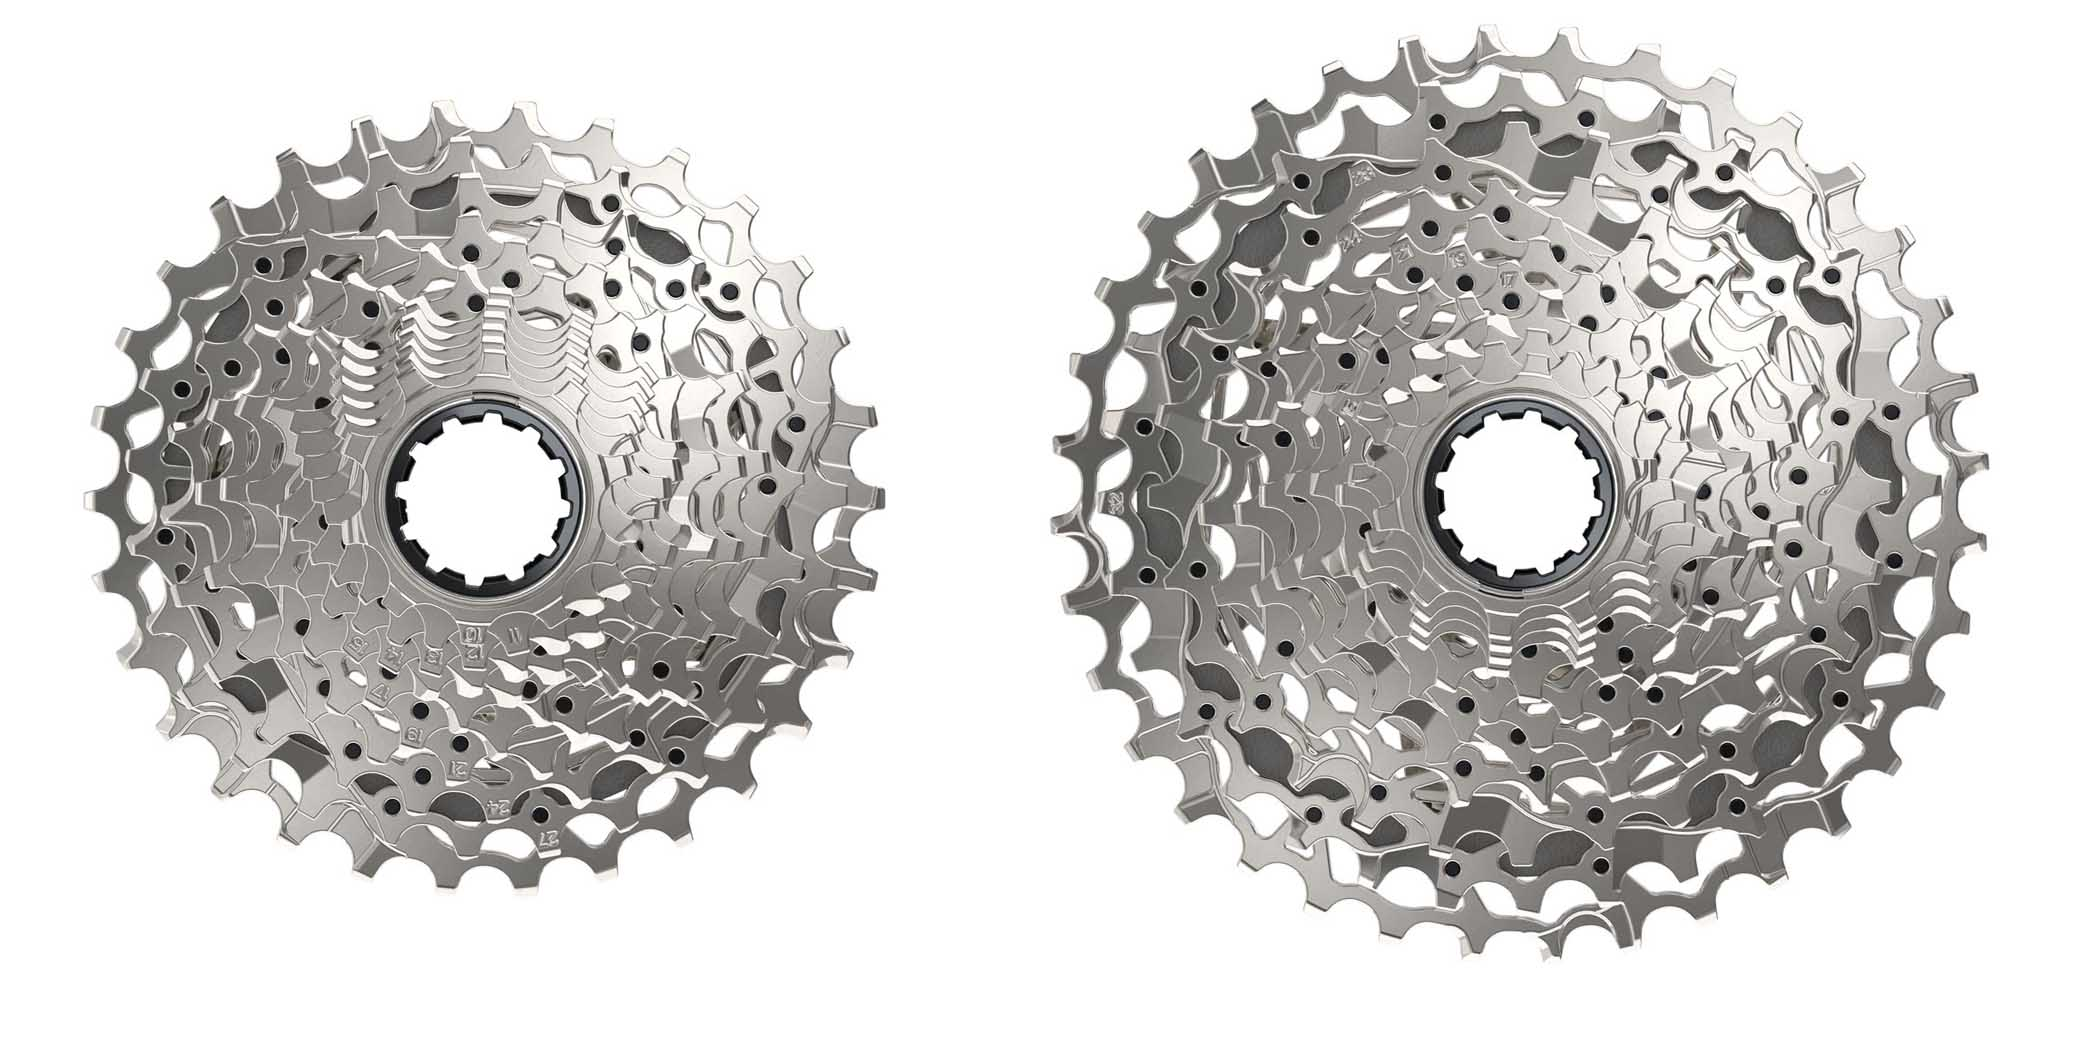 SRAM Rival eTap AXS cassette options